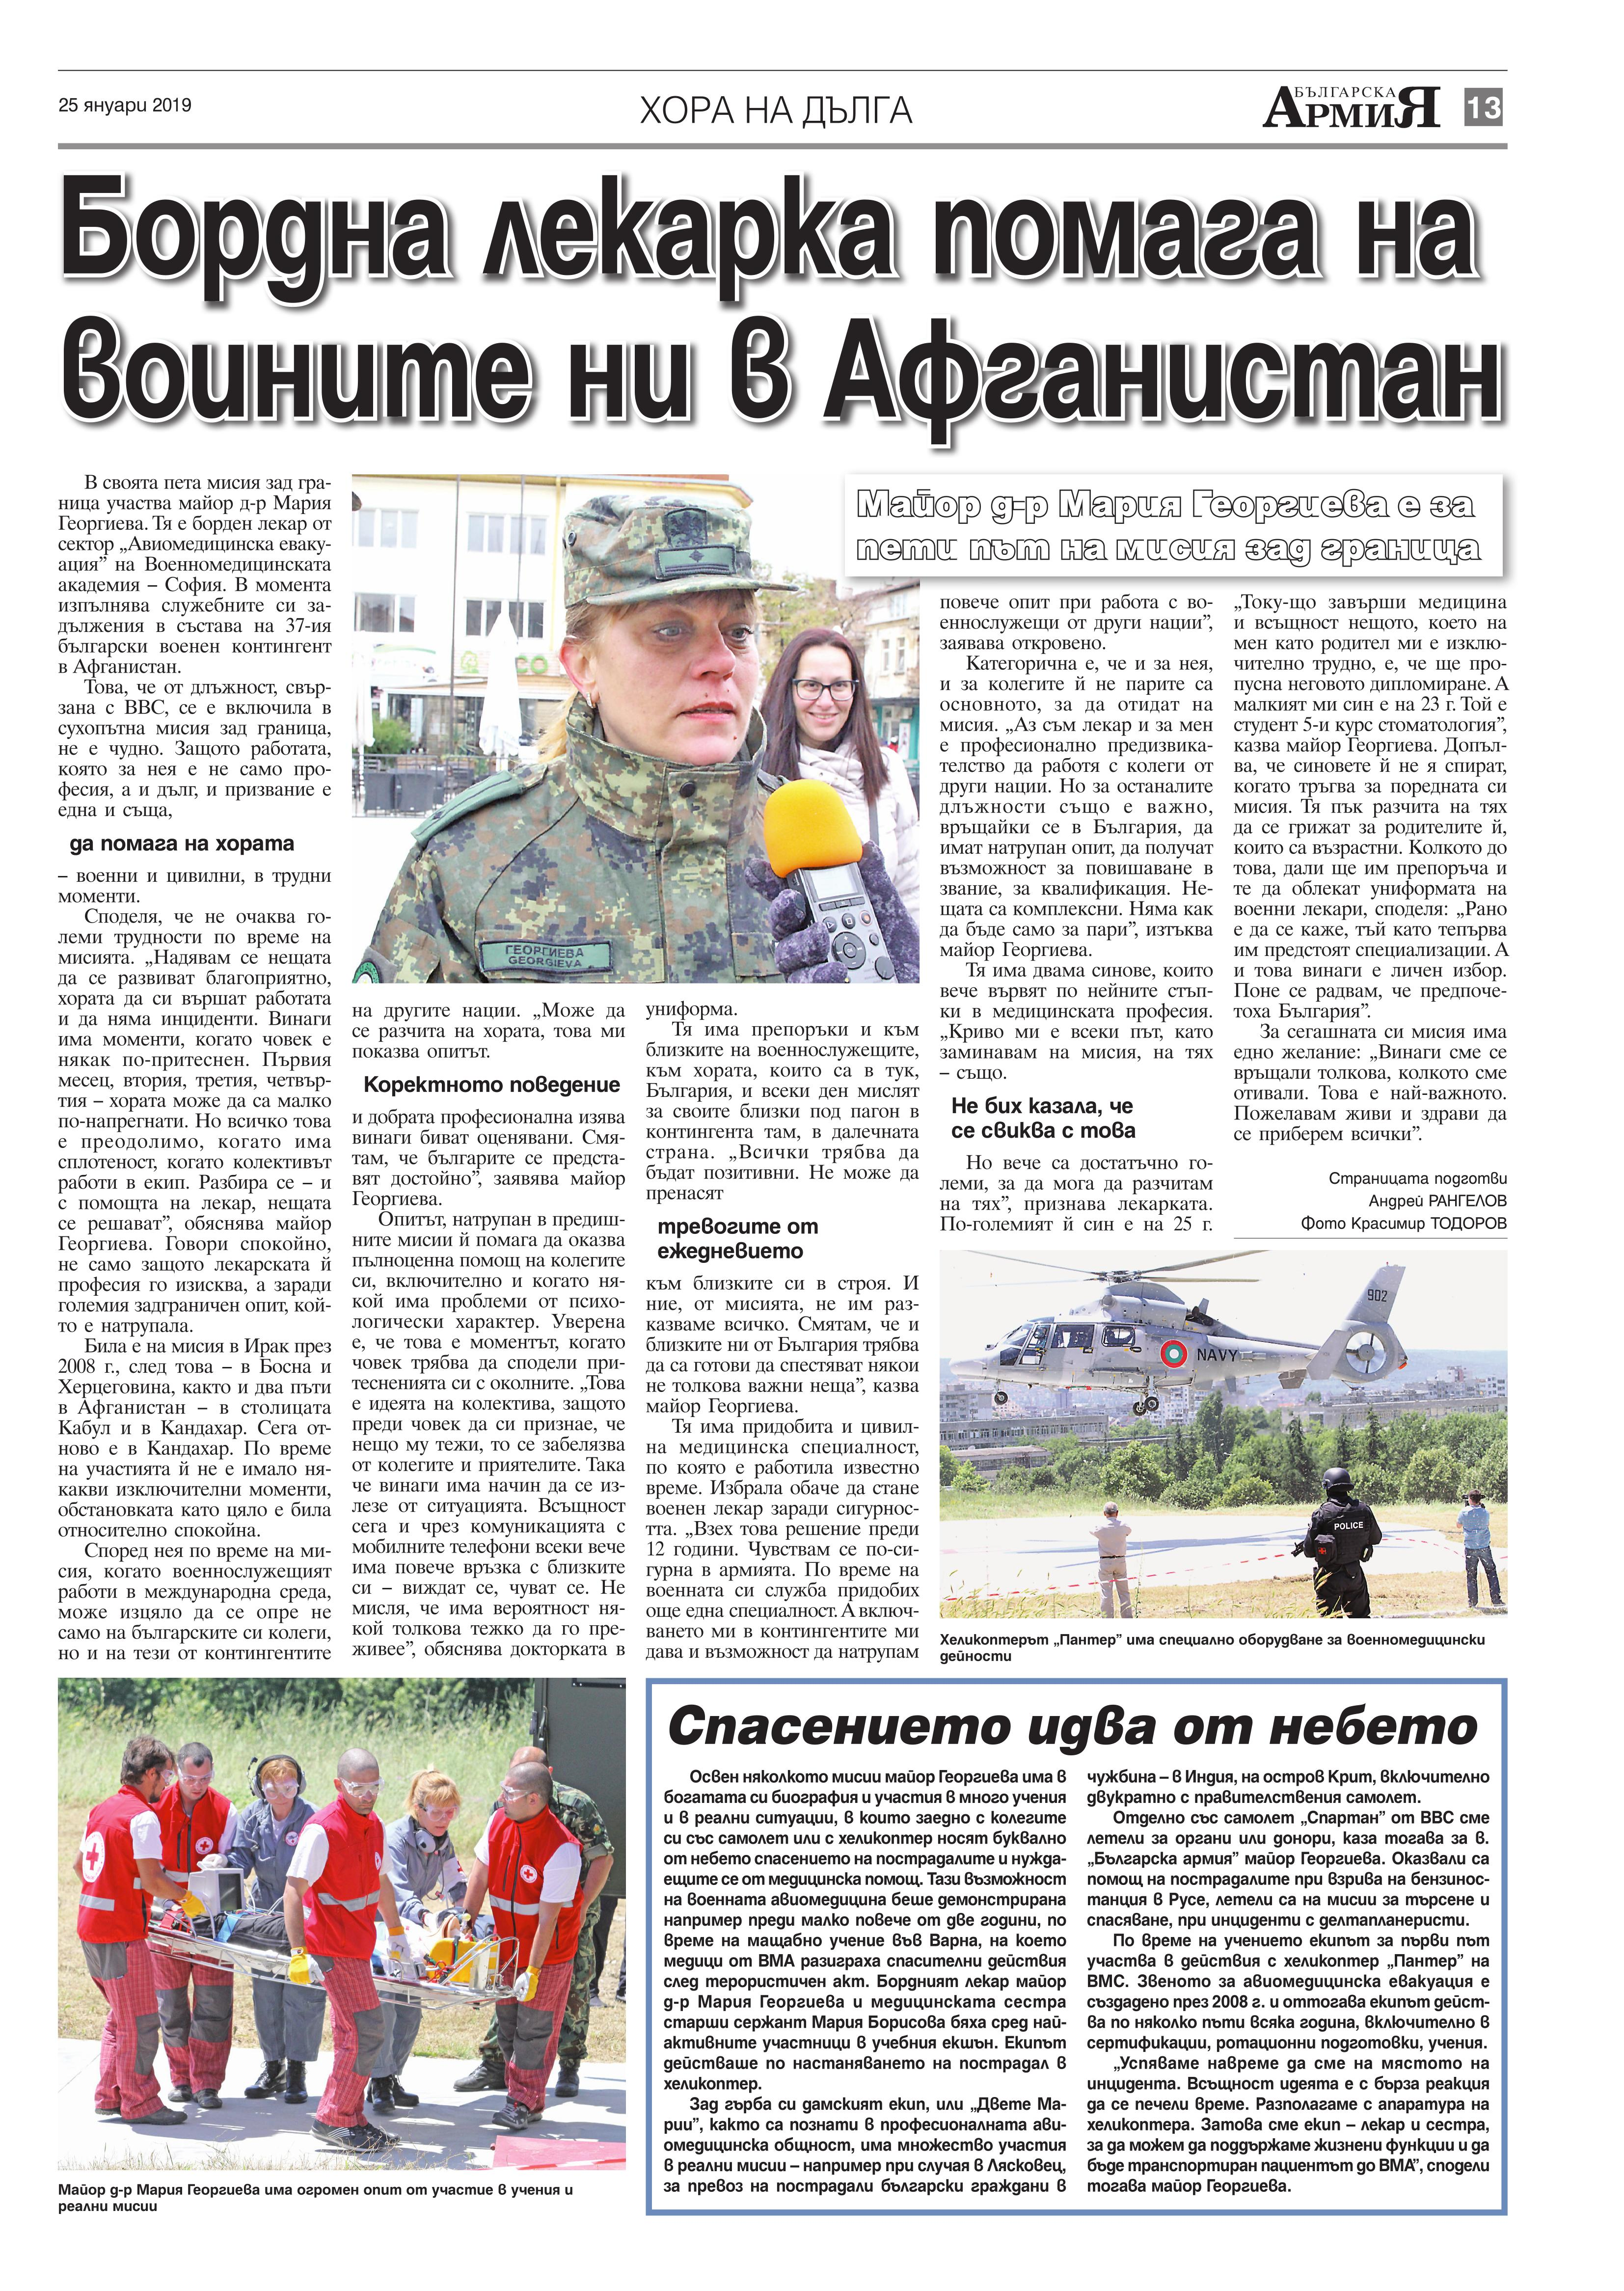 https://armymedia.bg/wp-content/uploads/2015/06/13.page1_-81.jpg